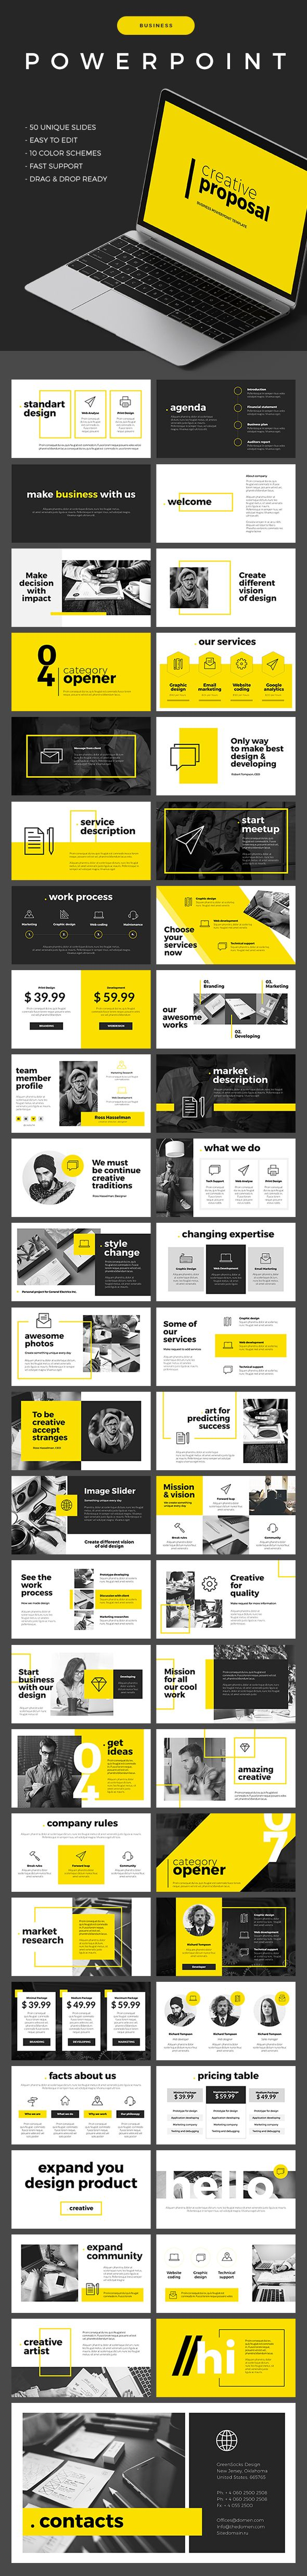 business powerpoint template | business powerpoint templates, Powerpoint templates